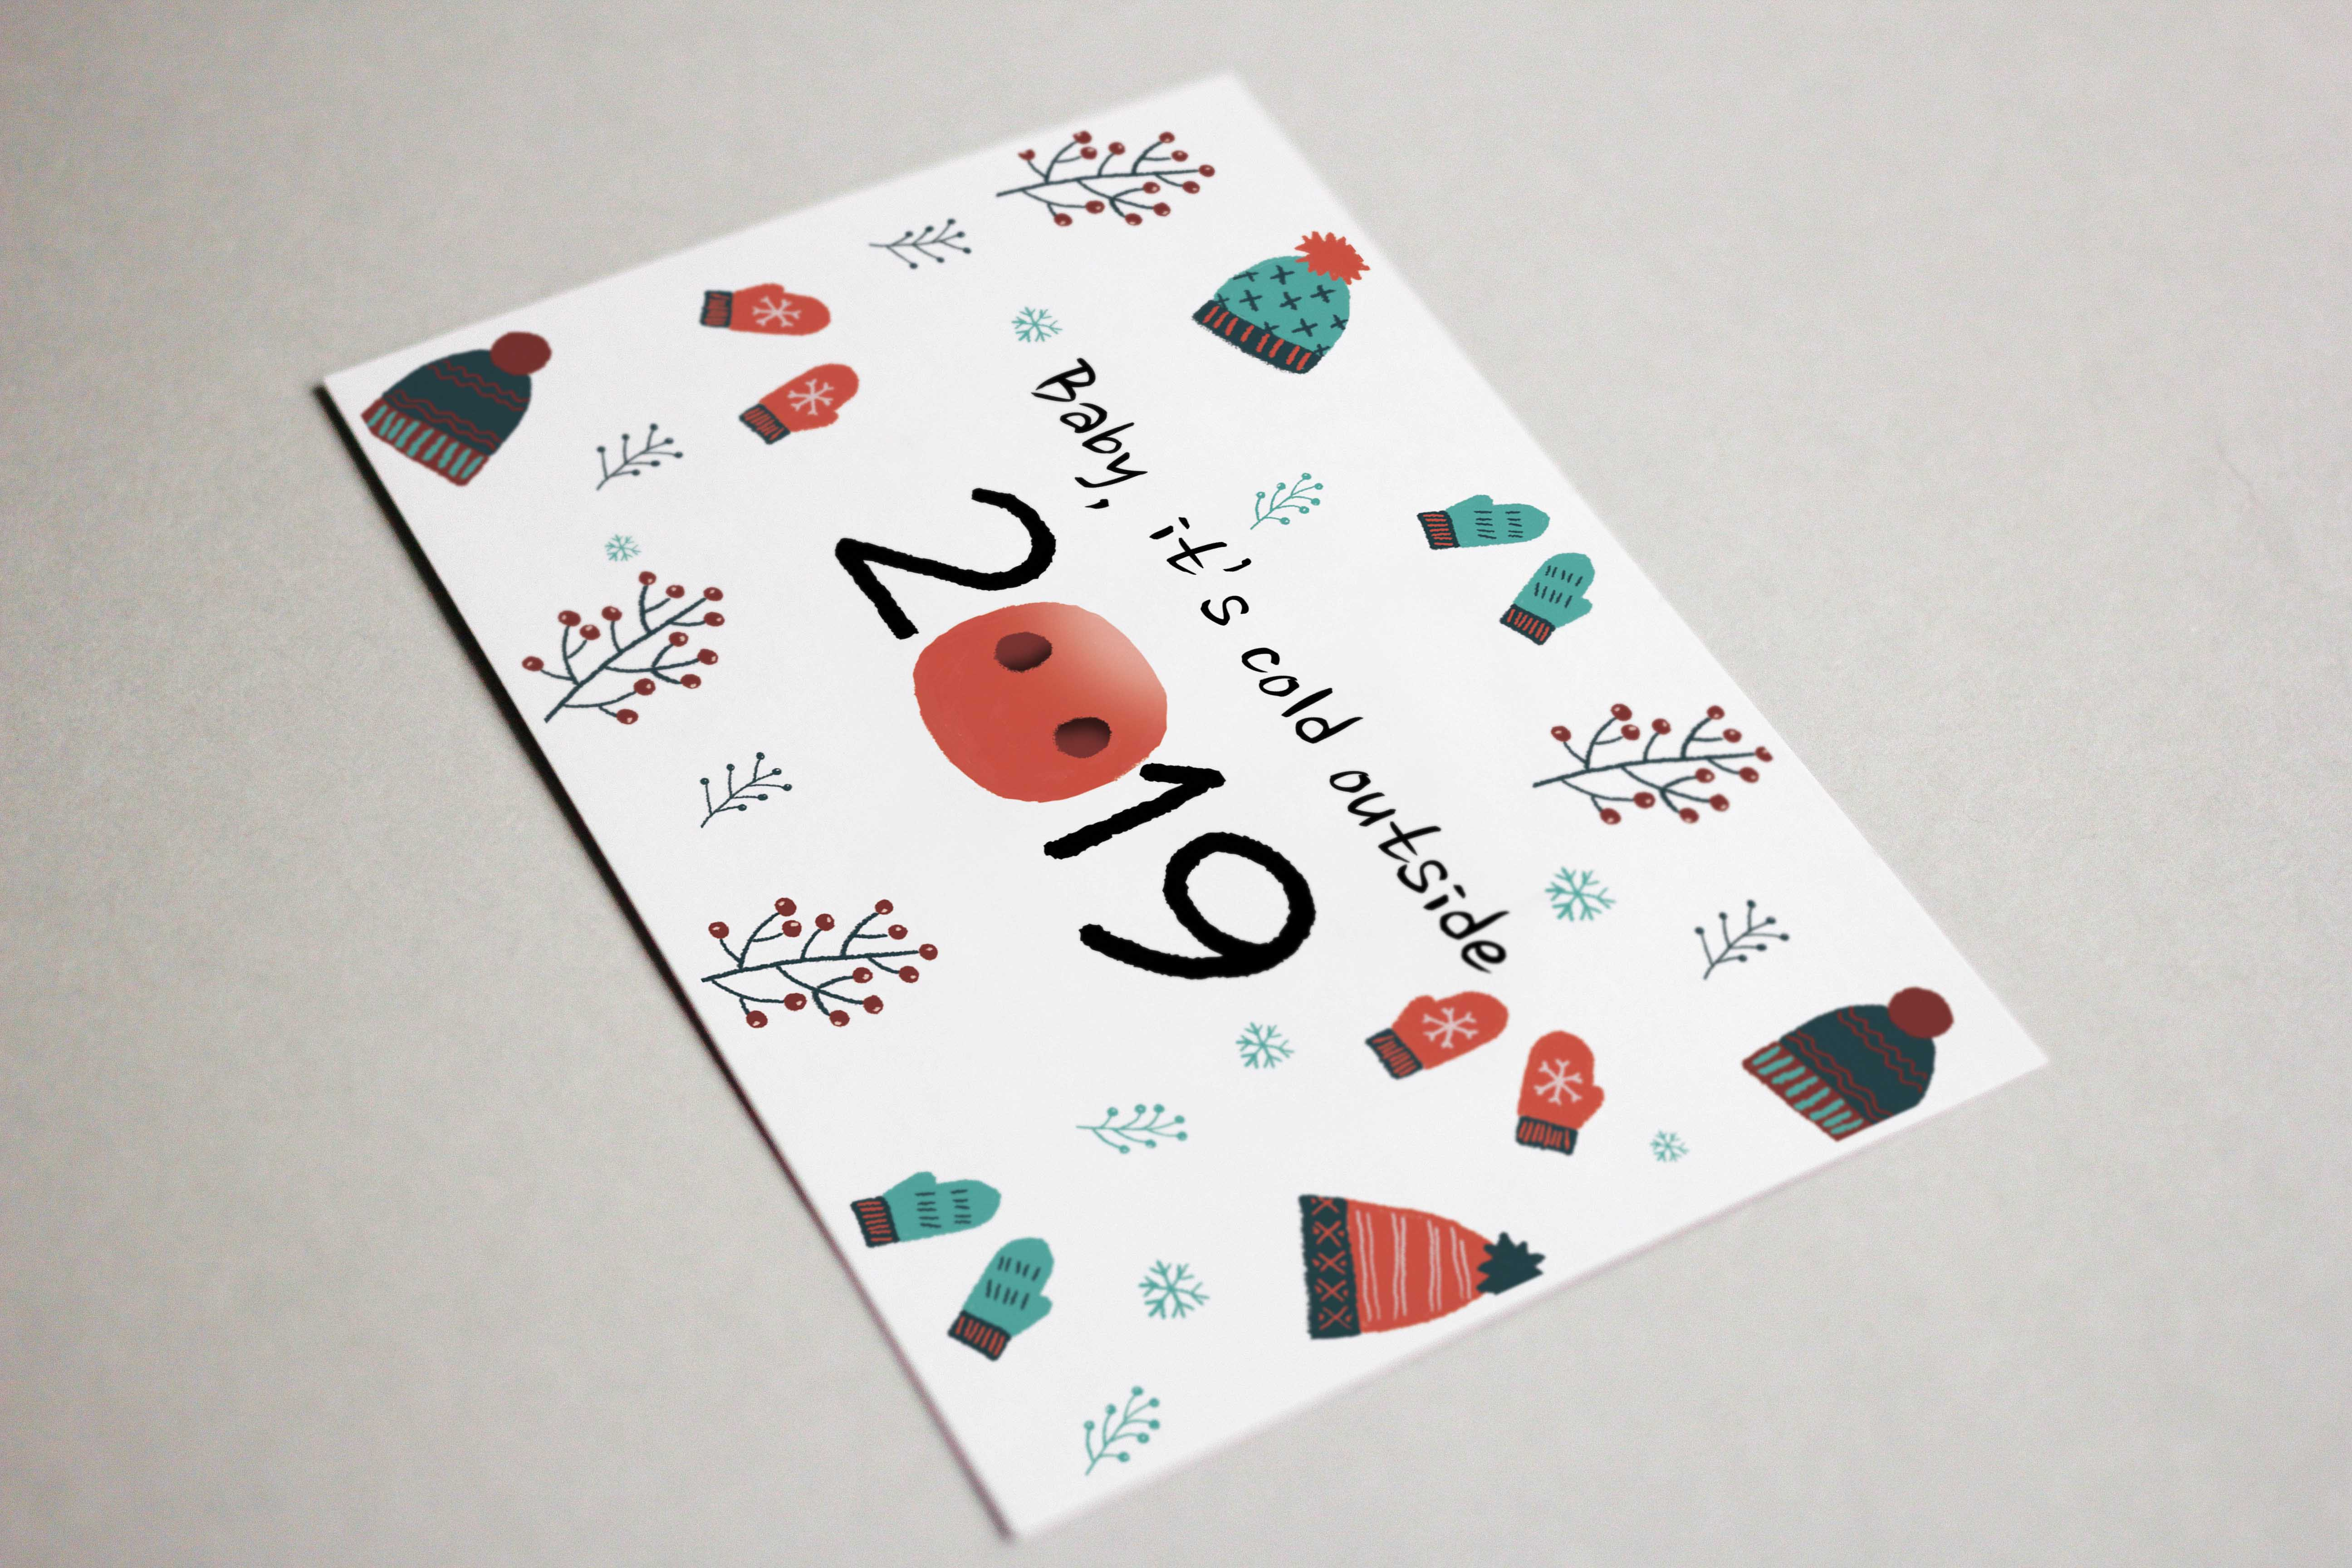 Give Your Friend a Non-Virtual New Year Card! - Free mock 02